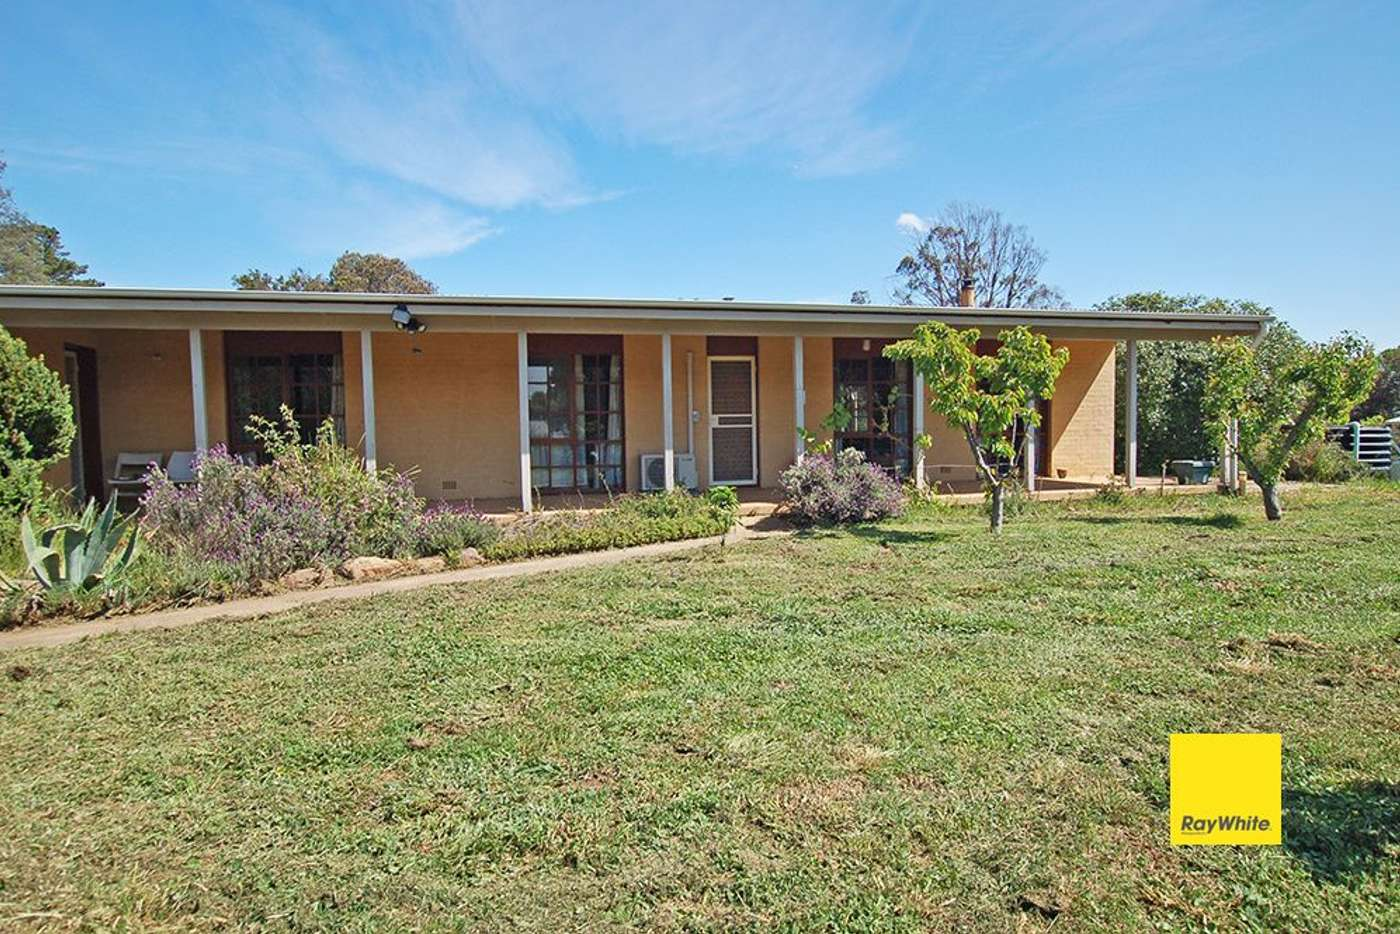 Main view of Homely house listing, 13 Lot Street, Gundaroo NSW 2620